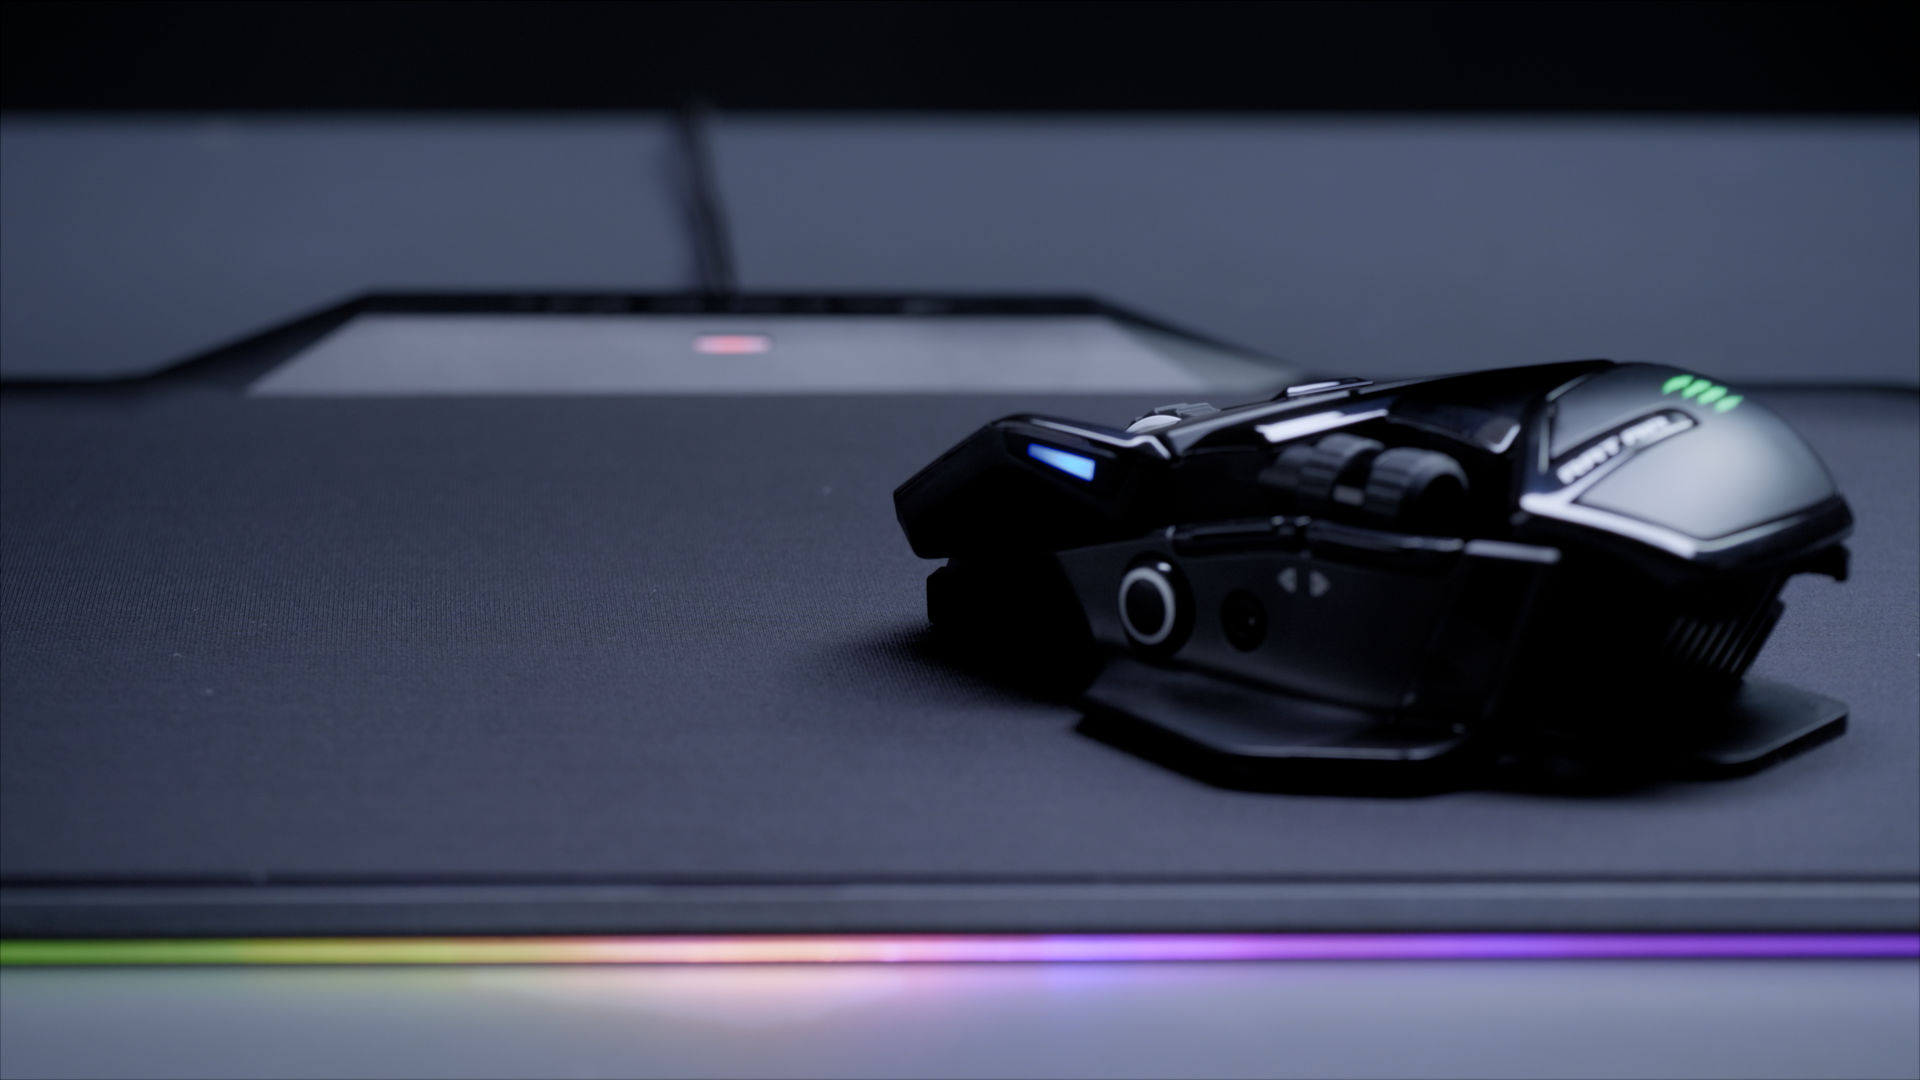 MadCatz takes on Logitech PowerPlay with the R.A.T AIR wireless gaming mouse